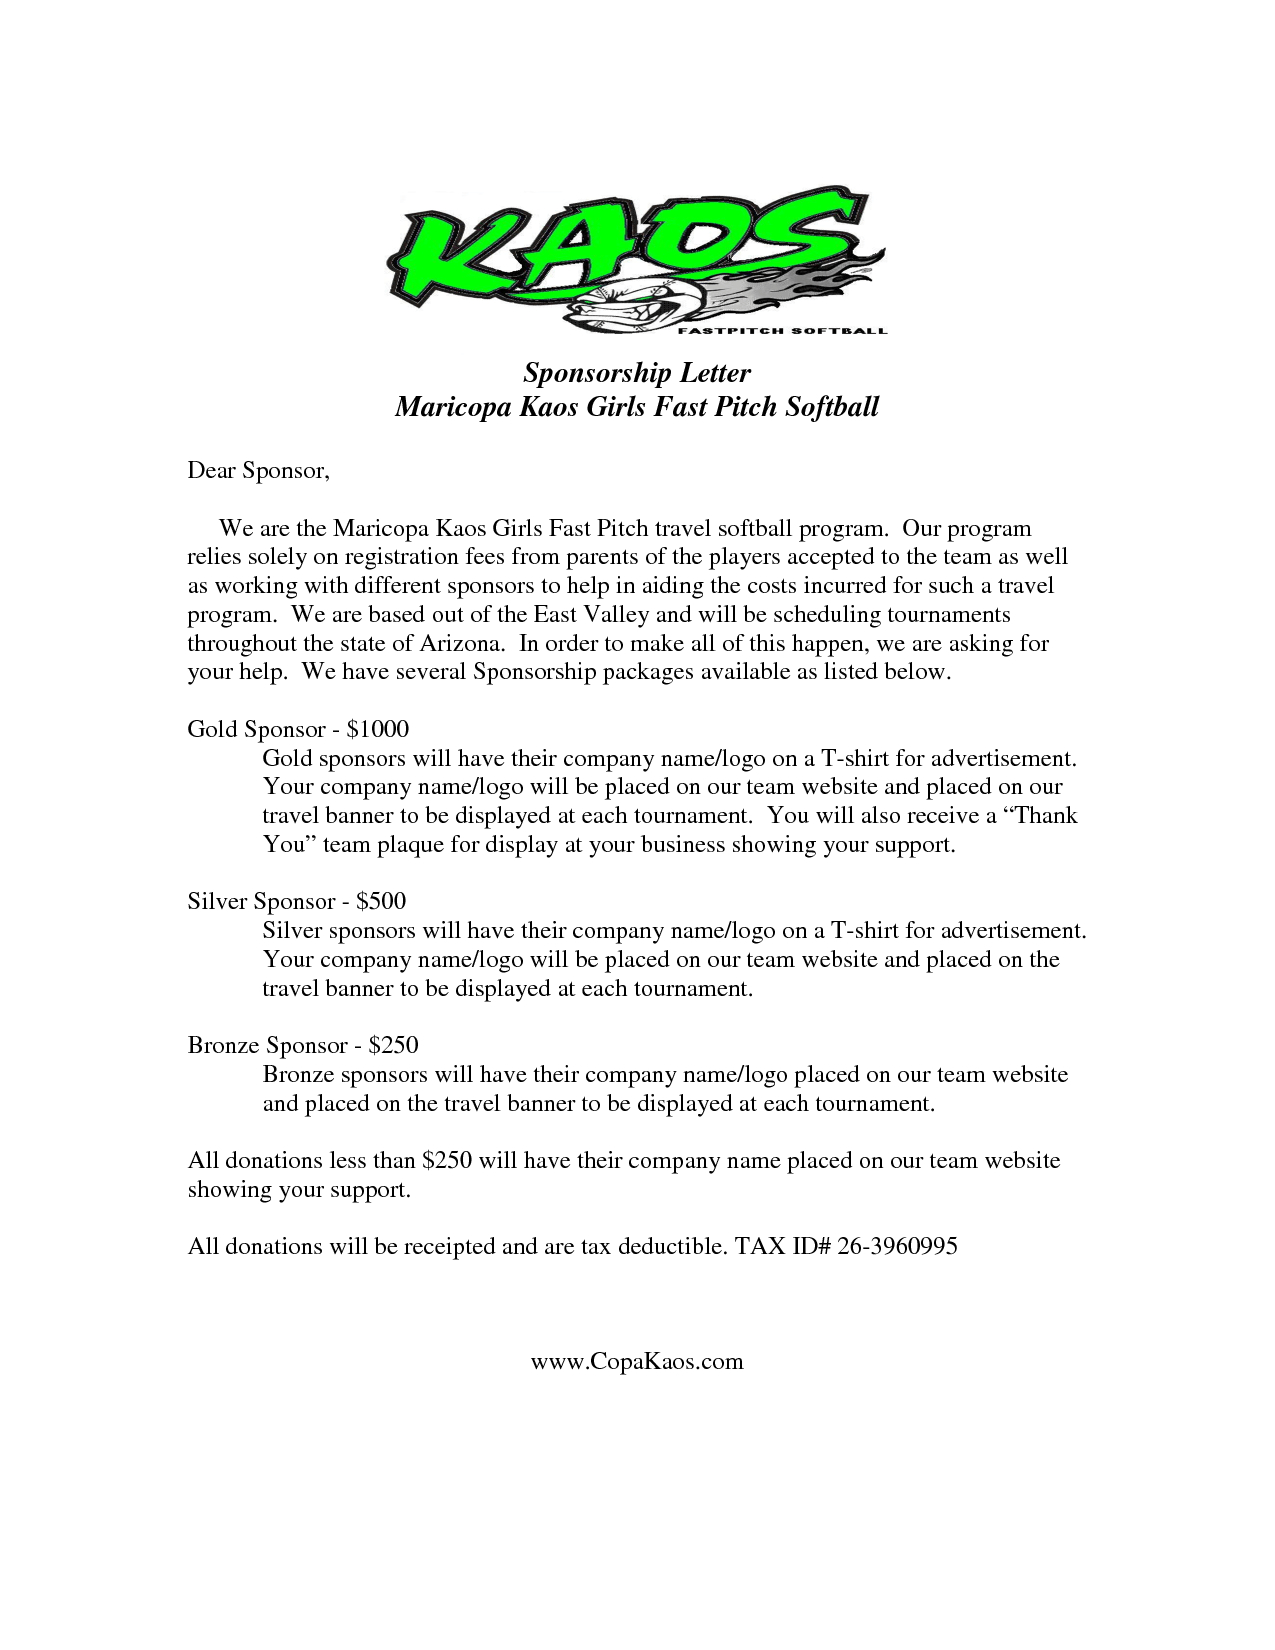 fundraising request letter template Collection-Image result for sample sponsor request letter donation 10-t